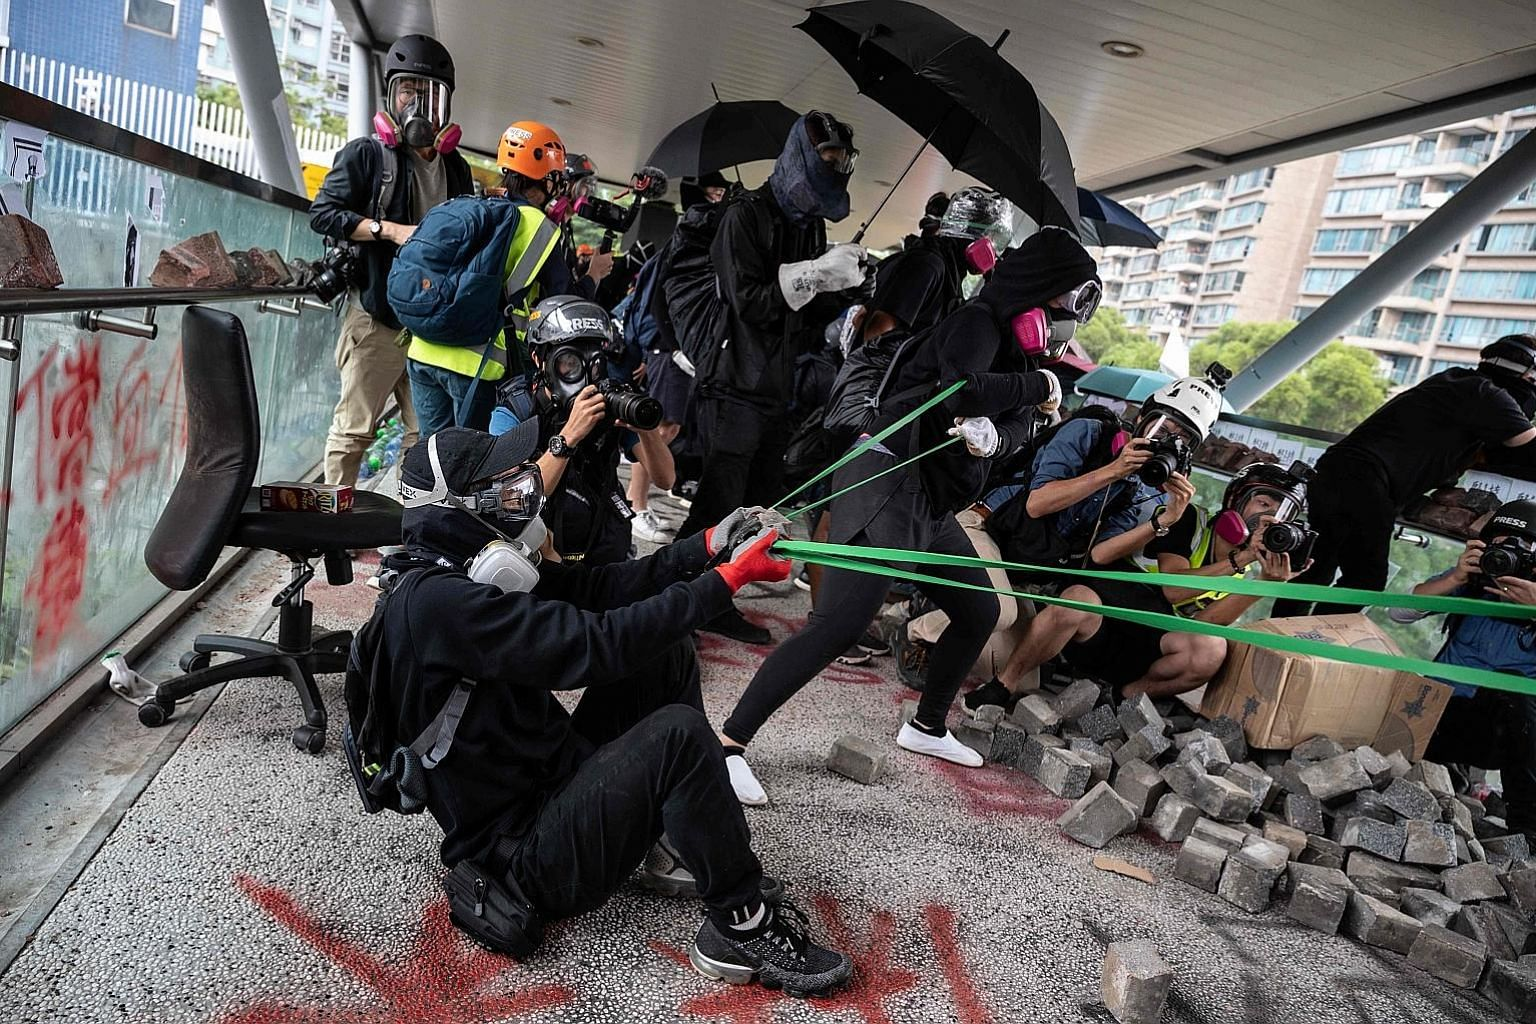 A protester (above) using a catapult against the police at Hong Kong's City University yesterday. The biggest stand-offs took place at the Chinese University of Hong Kong, where pitched battles continued throughout the day. Protests elsewhere disrupt